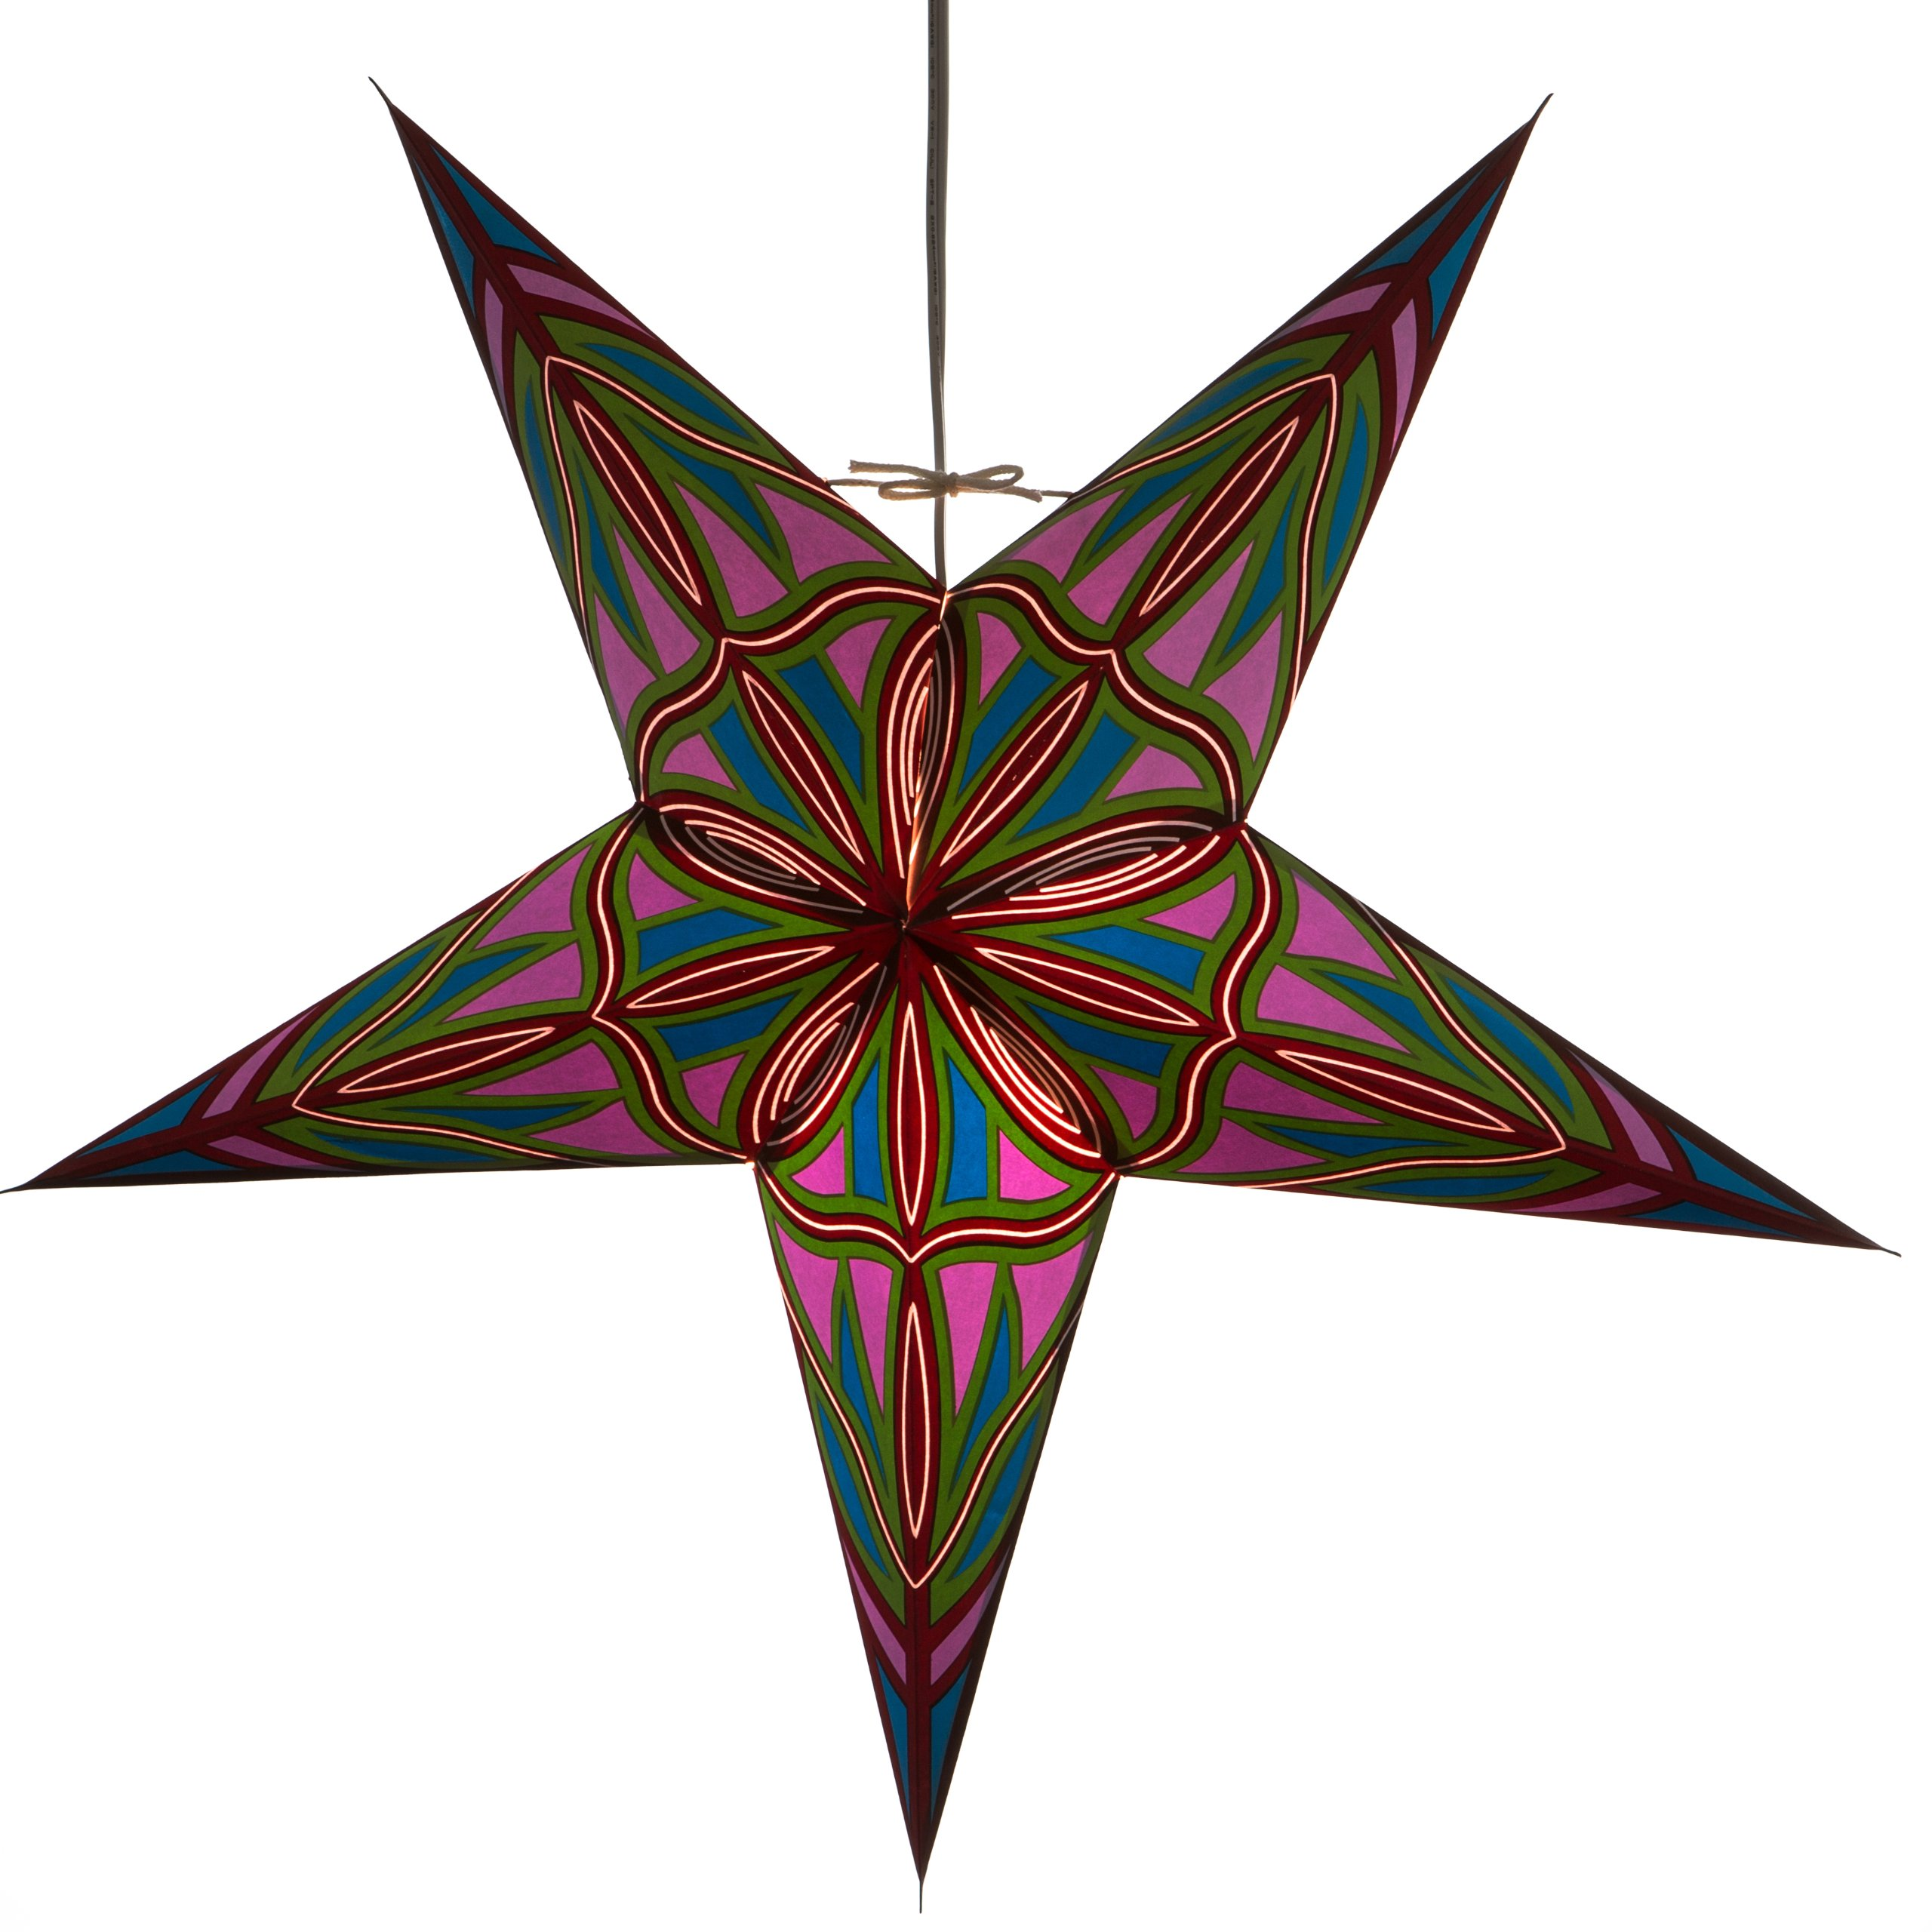 Serendipity Paper Star Lantern with 12 Foot Power Cord Included